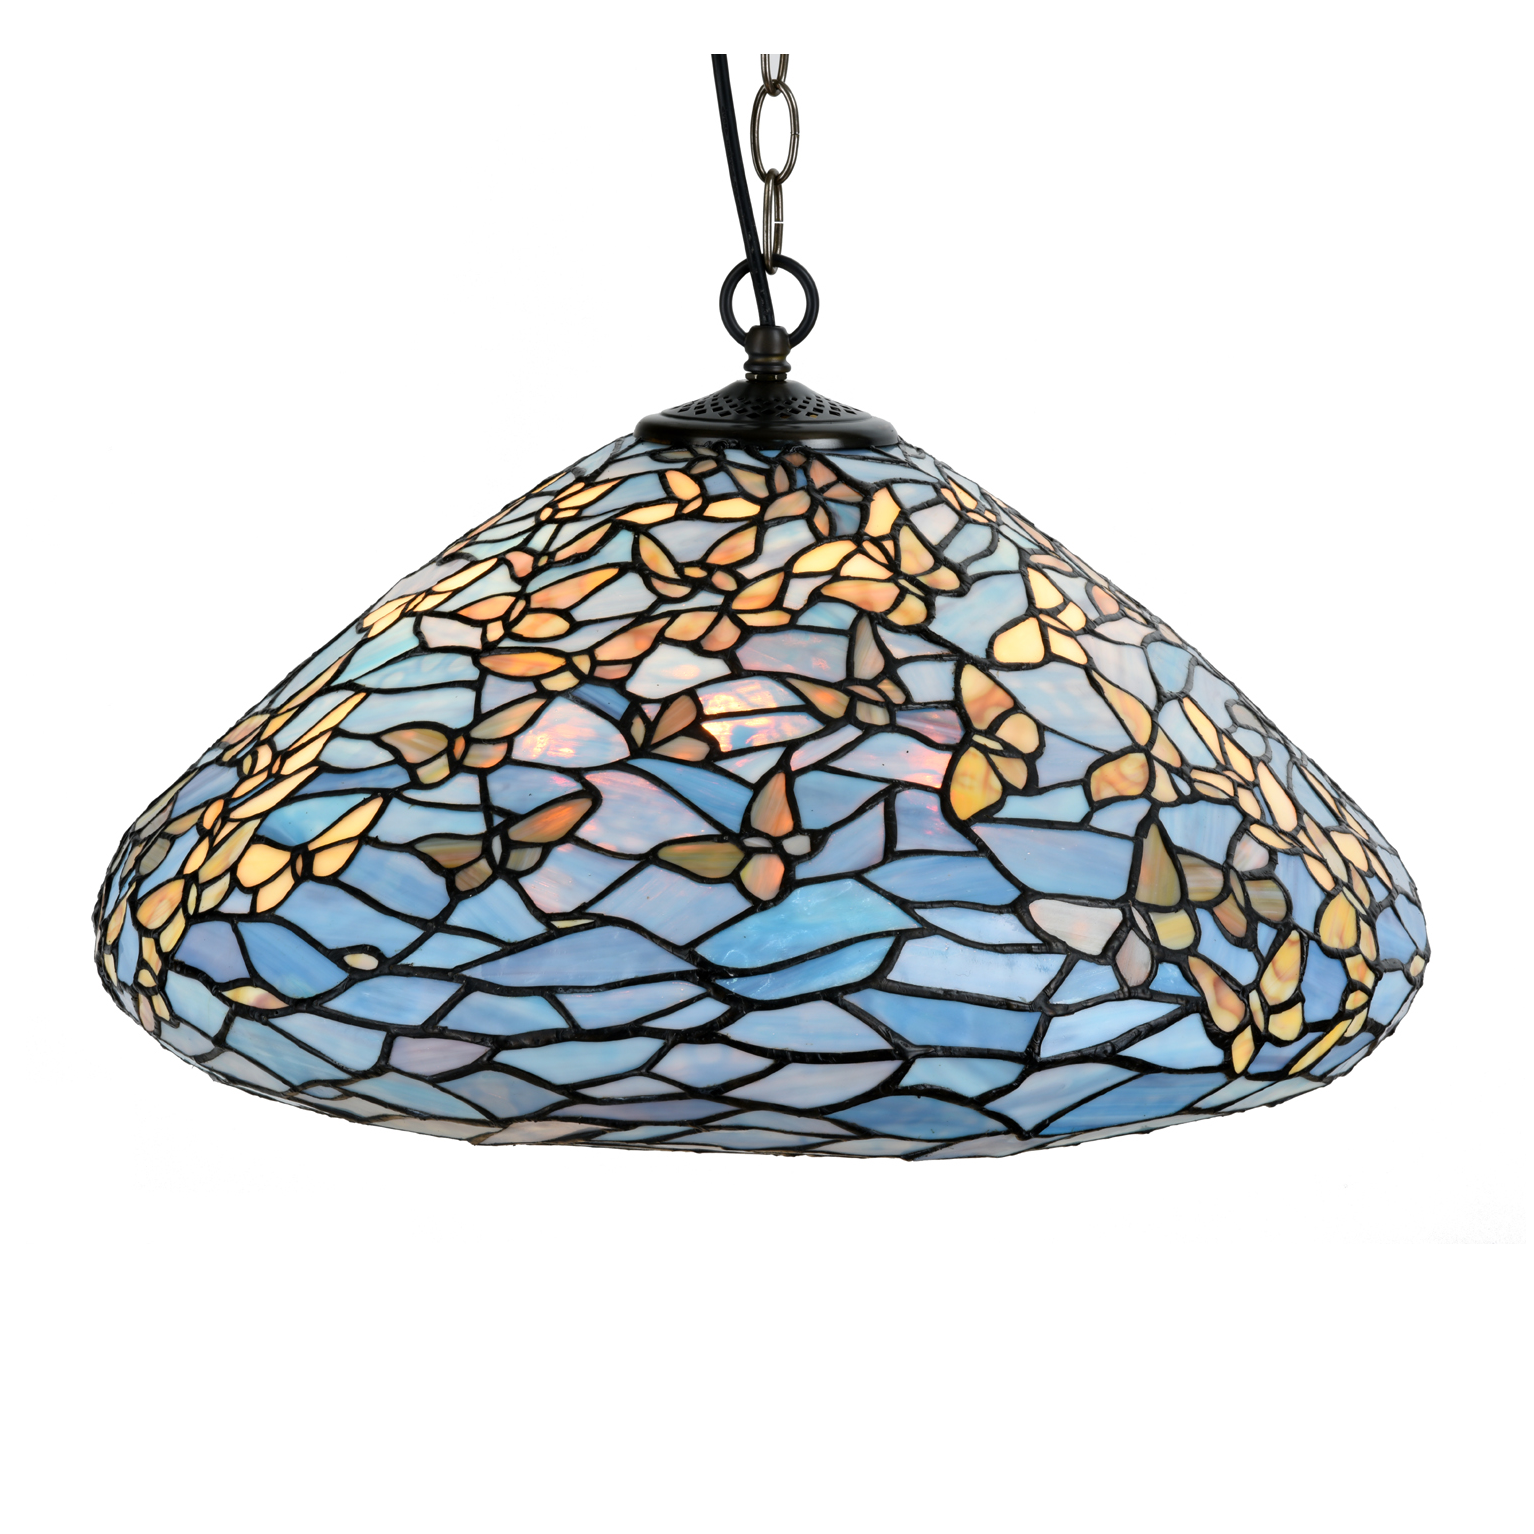 Hanging lights - - The official tiffany webshop.Tiffany ...